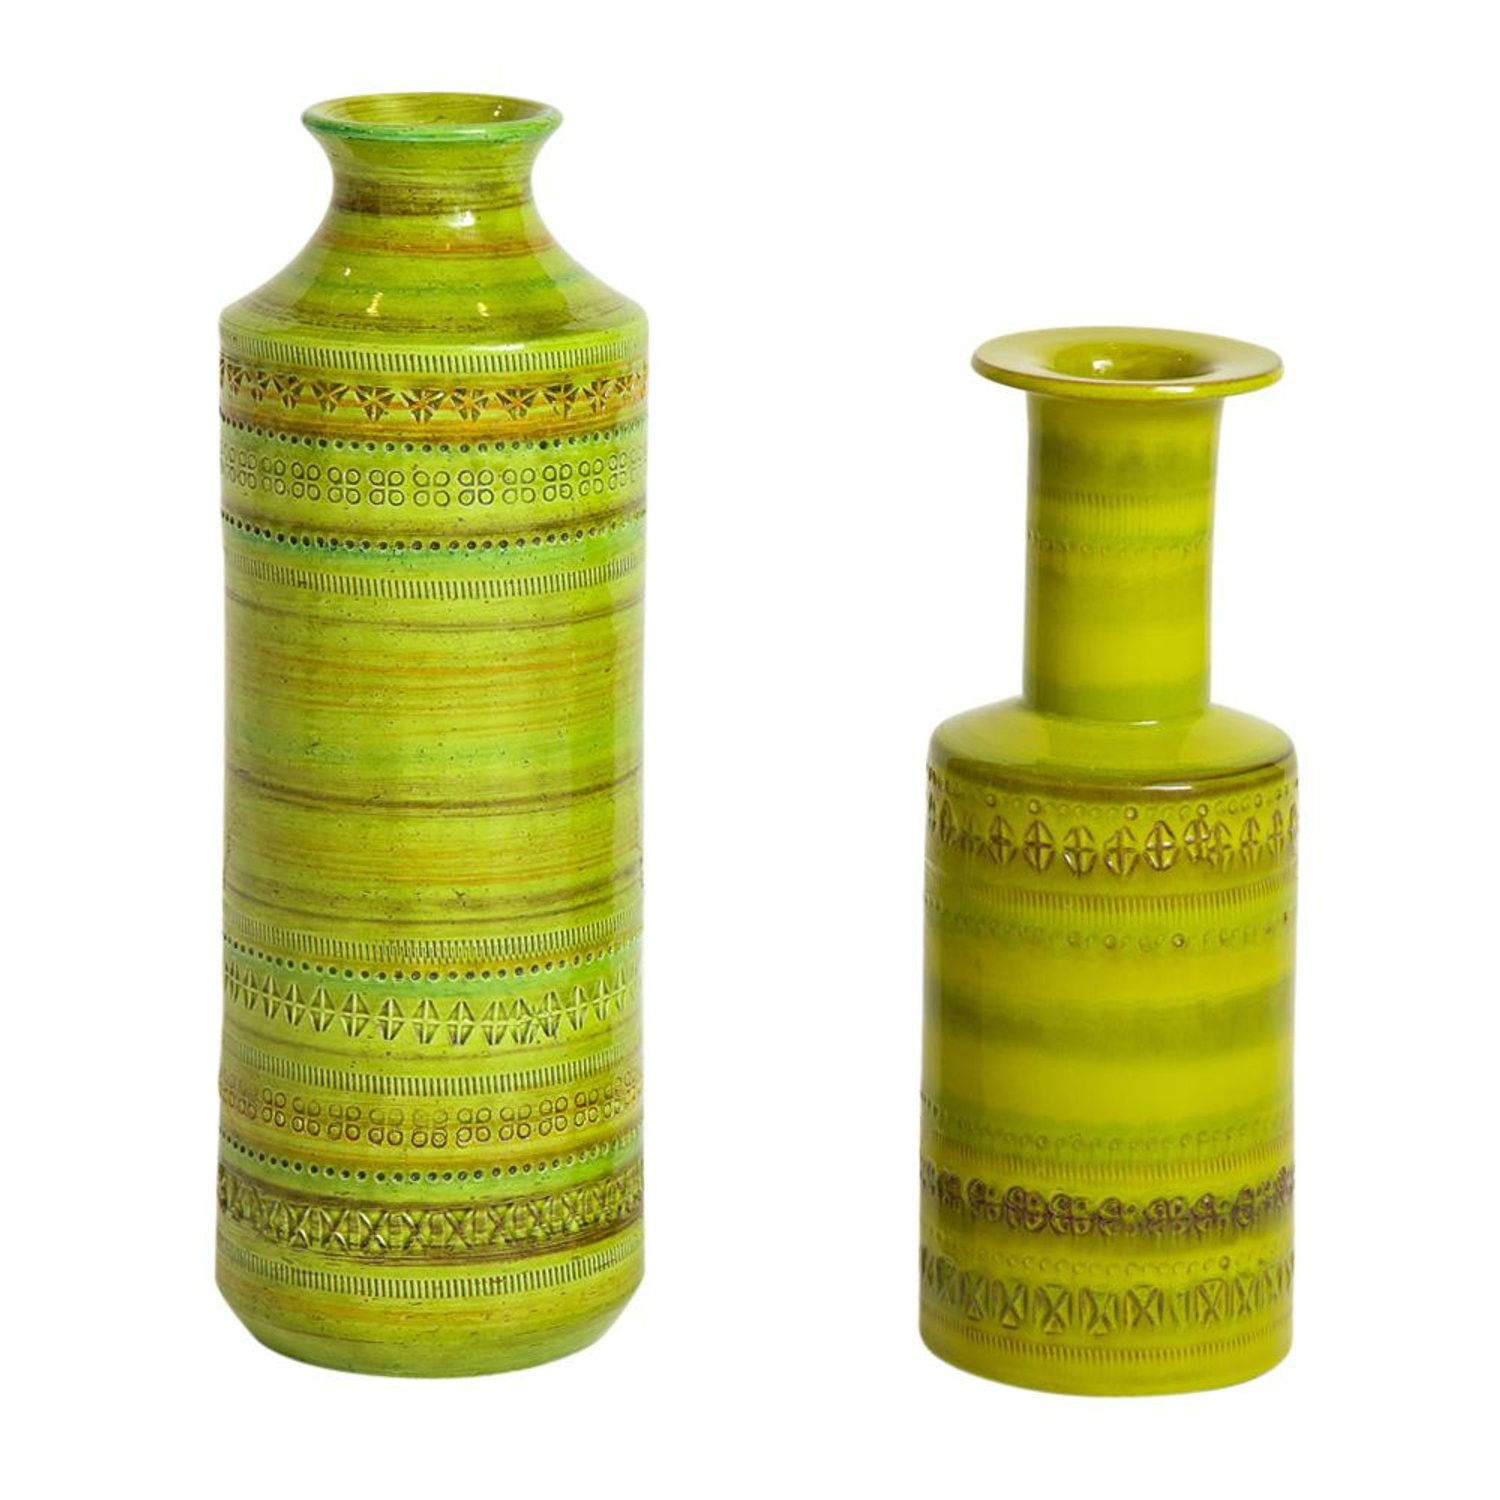 narrow neck glass vase of bitossi ceramic vase rosenthal netter chartreuse signed italy 1960s intended for bitossi ceramic vase rosenthal netter chartreuse signed italy 1960s for sale at 1stdibs